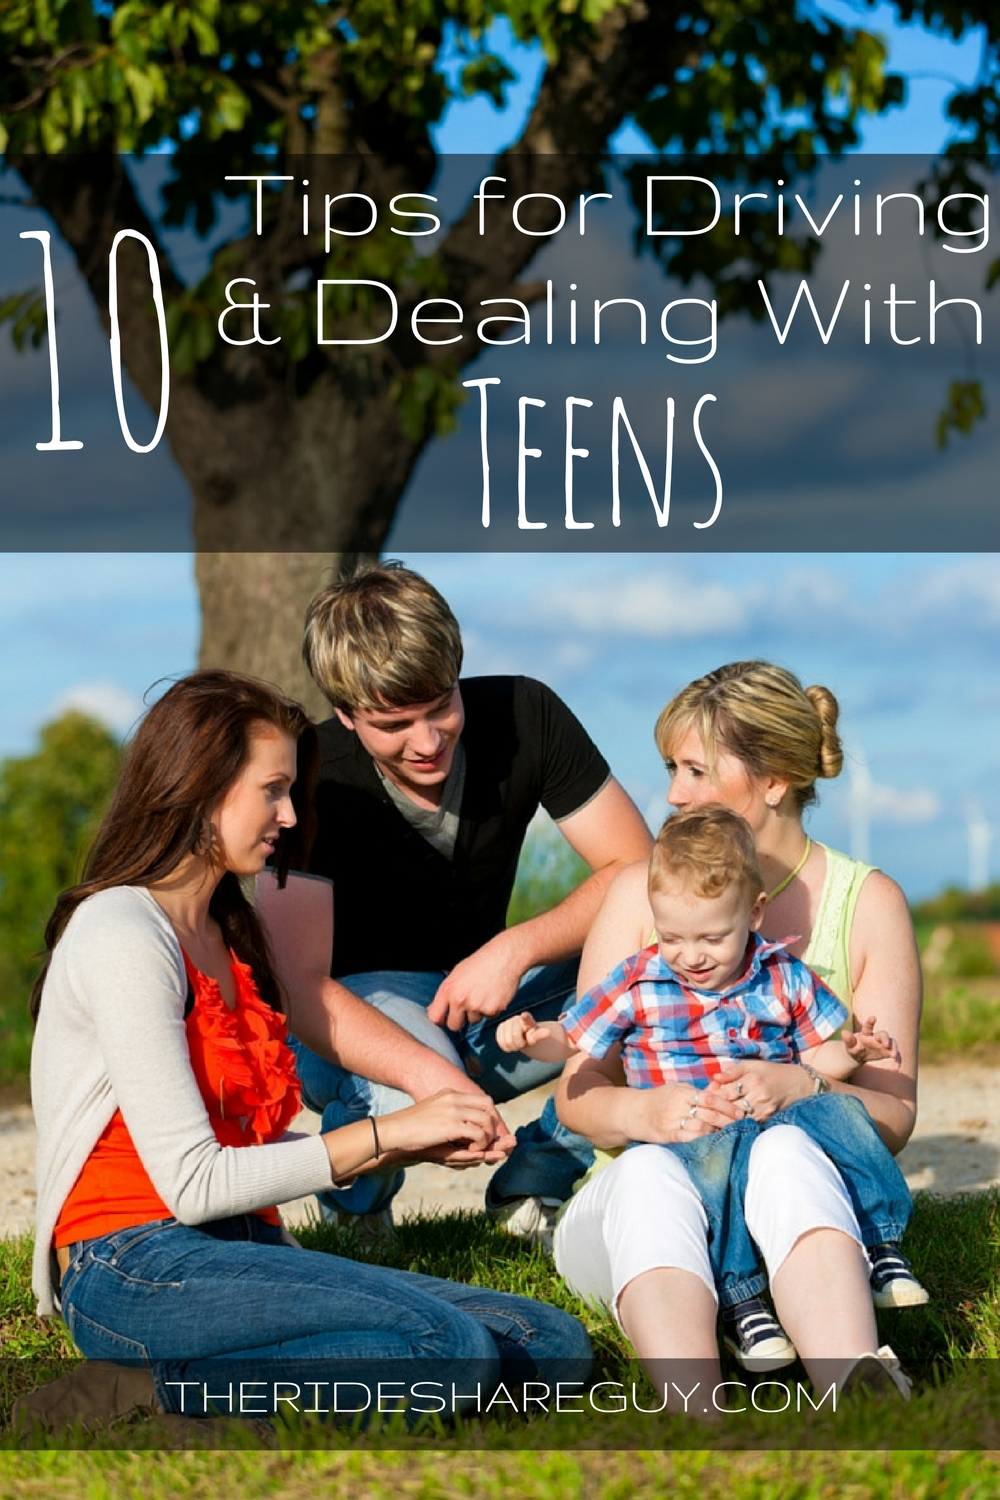 Ten Tips for Driving and Dealing With Teens